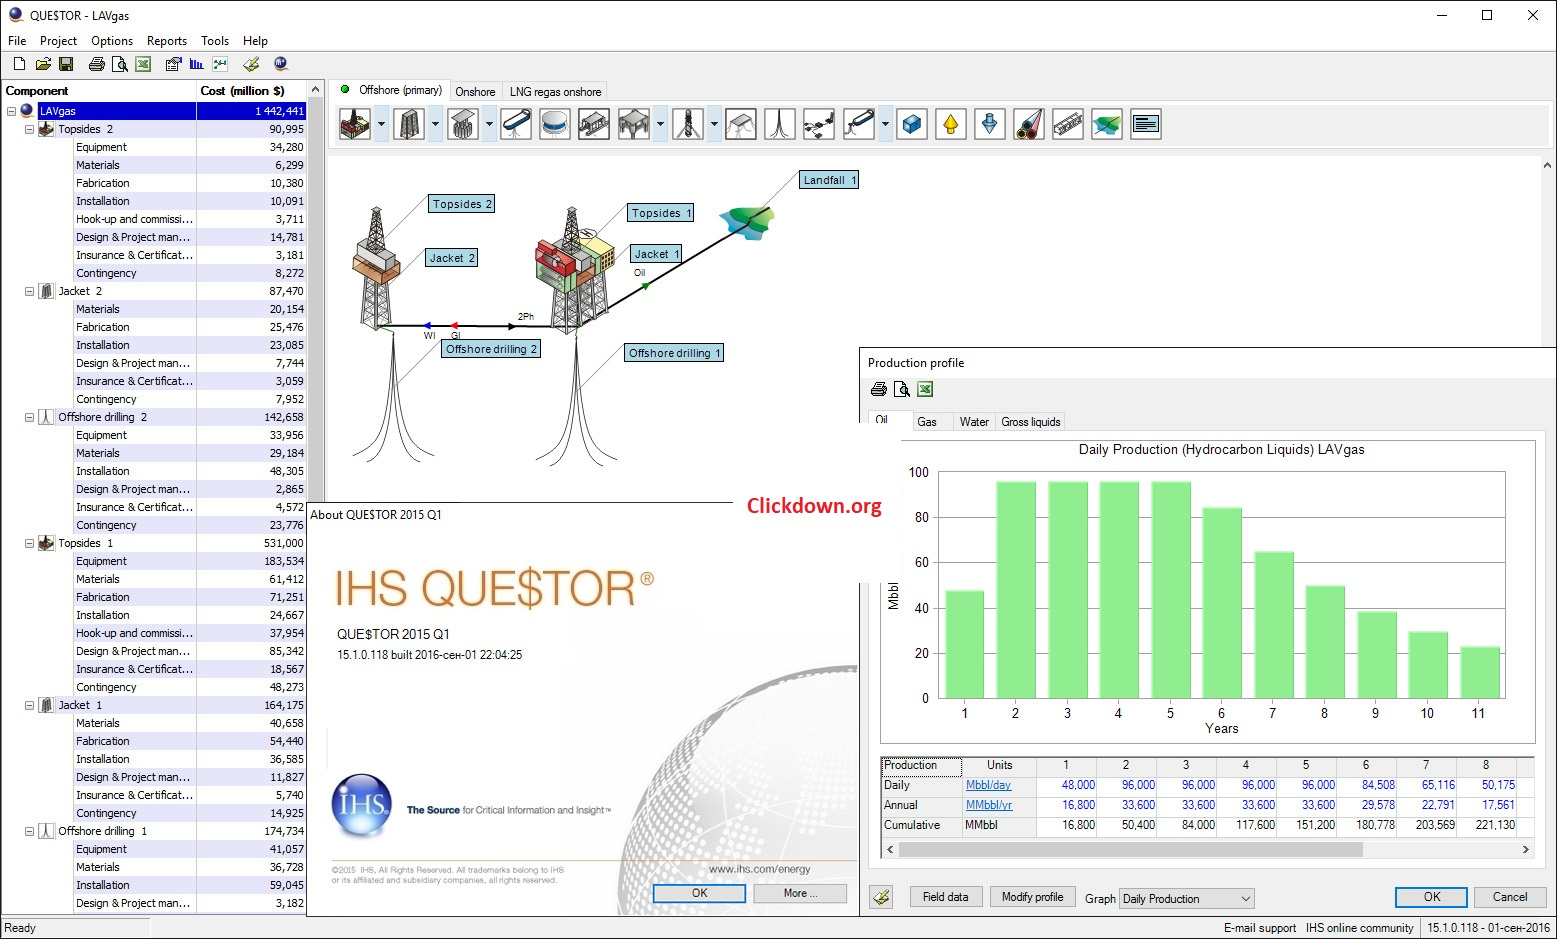 Working with Download IHS QUESTOR 2015 Q1 v15.1.0.118 full